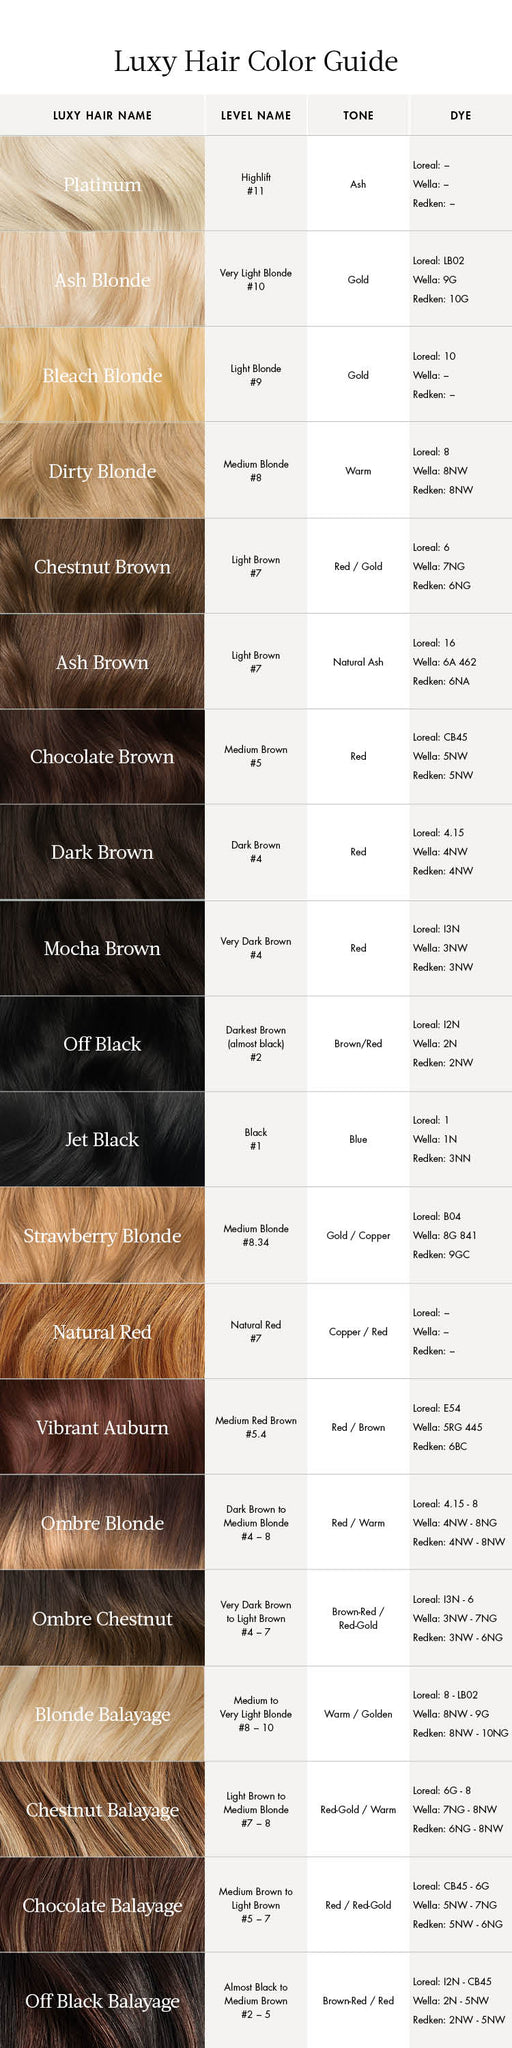 Luxy Hair Color Guide: How do I choose the right color of hair extensi